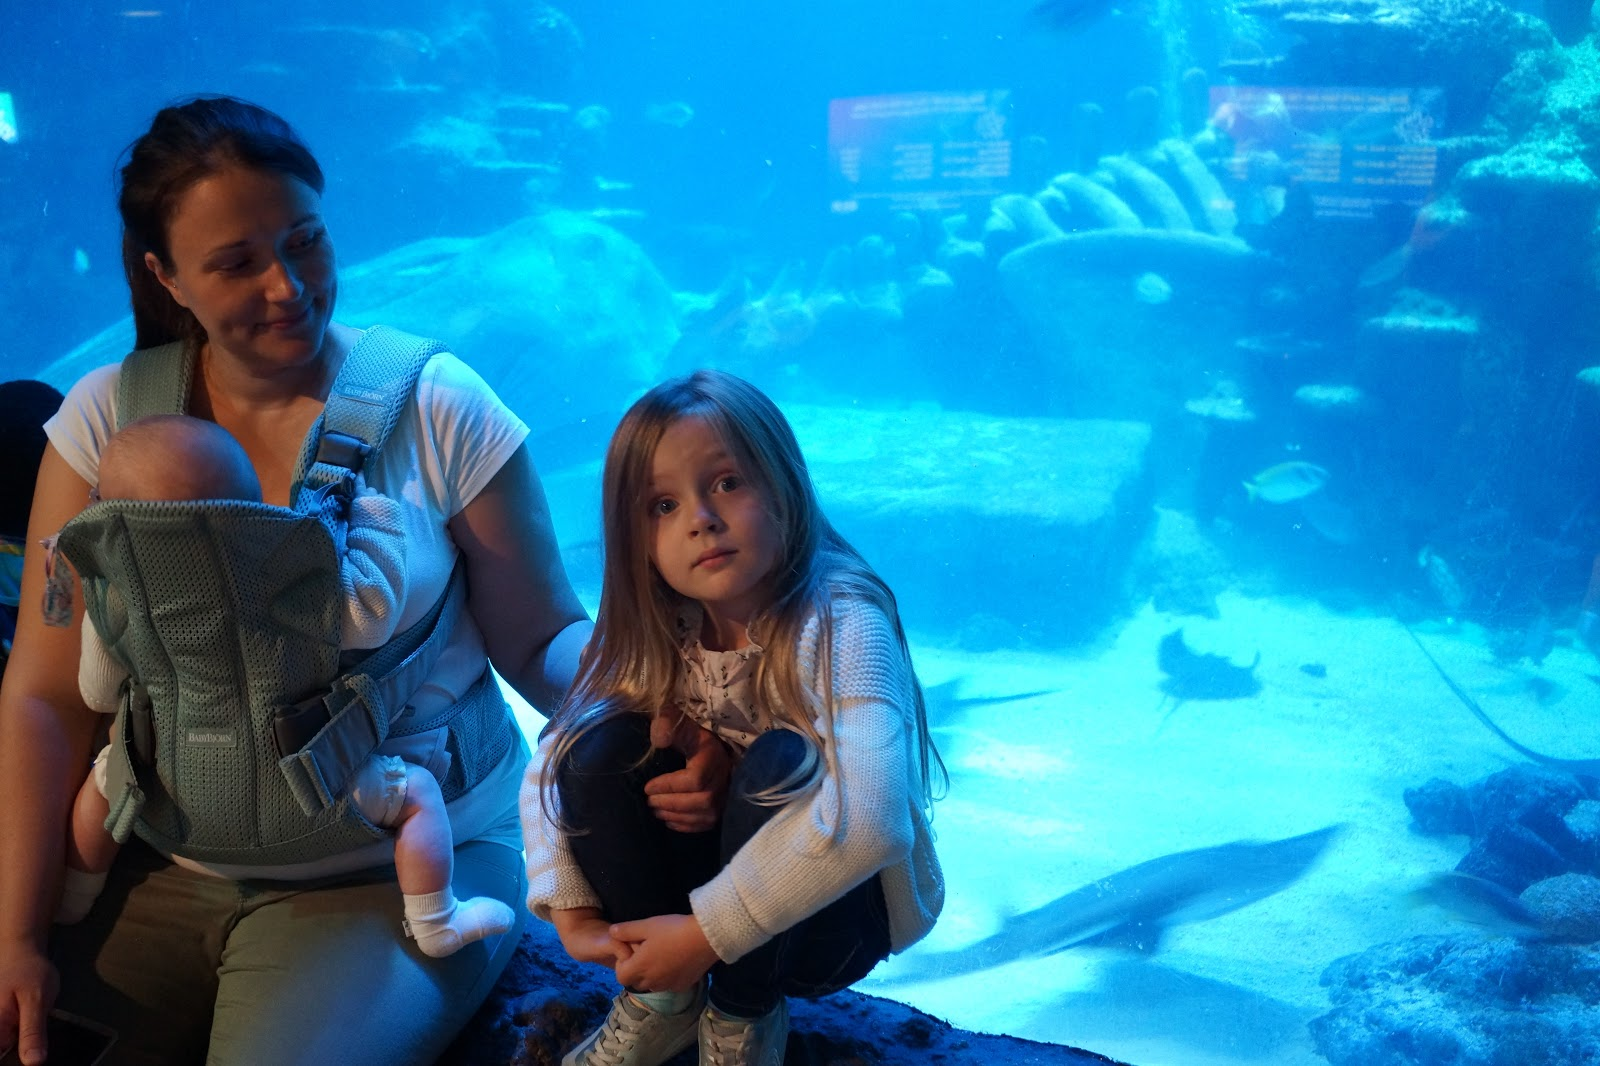 mum and daughter in front of fish tank